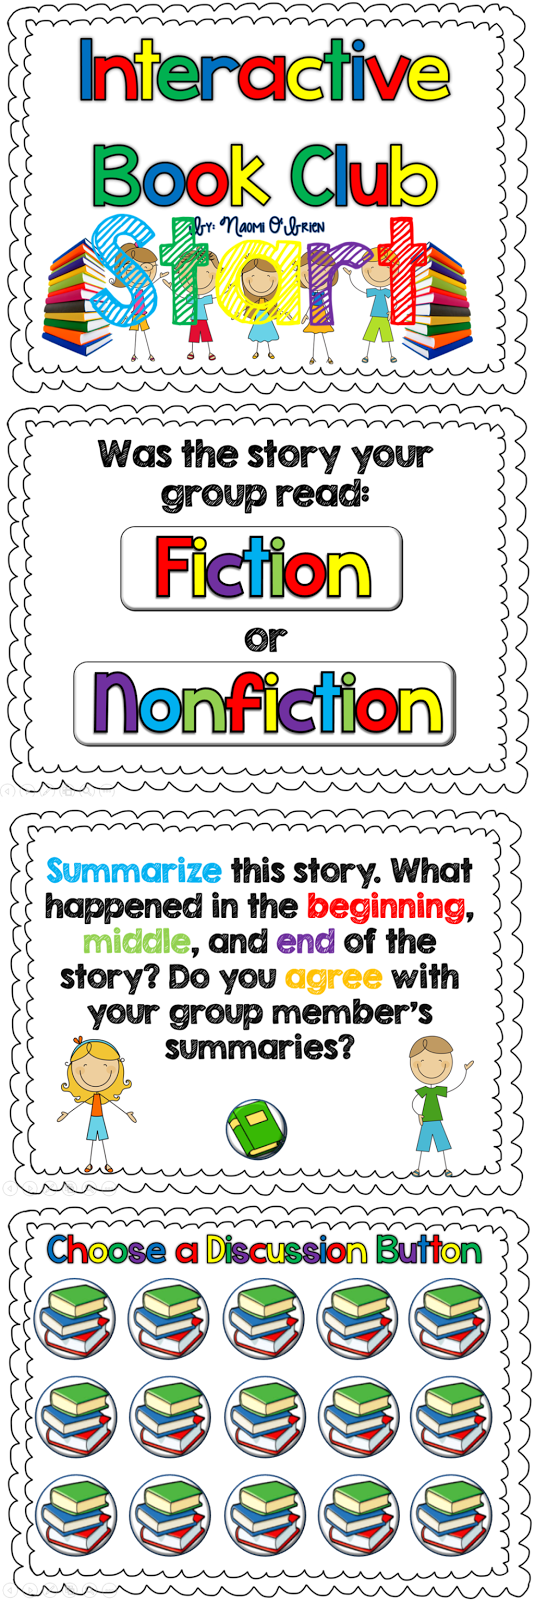 http://www.teacherspayteachers.com/Product/Interactive-Book-Club-for-Fiction-and-Nonfiction-Books-764449